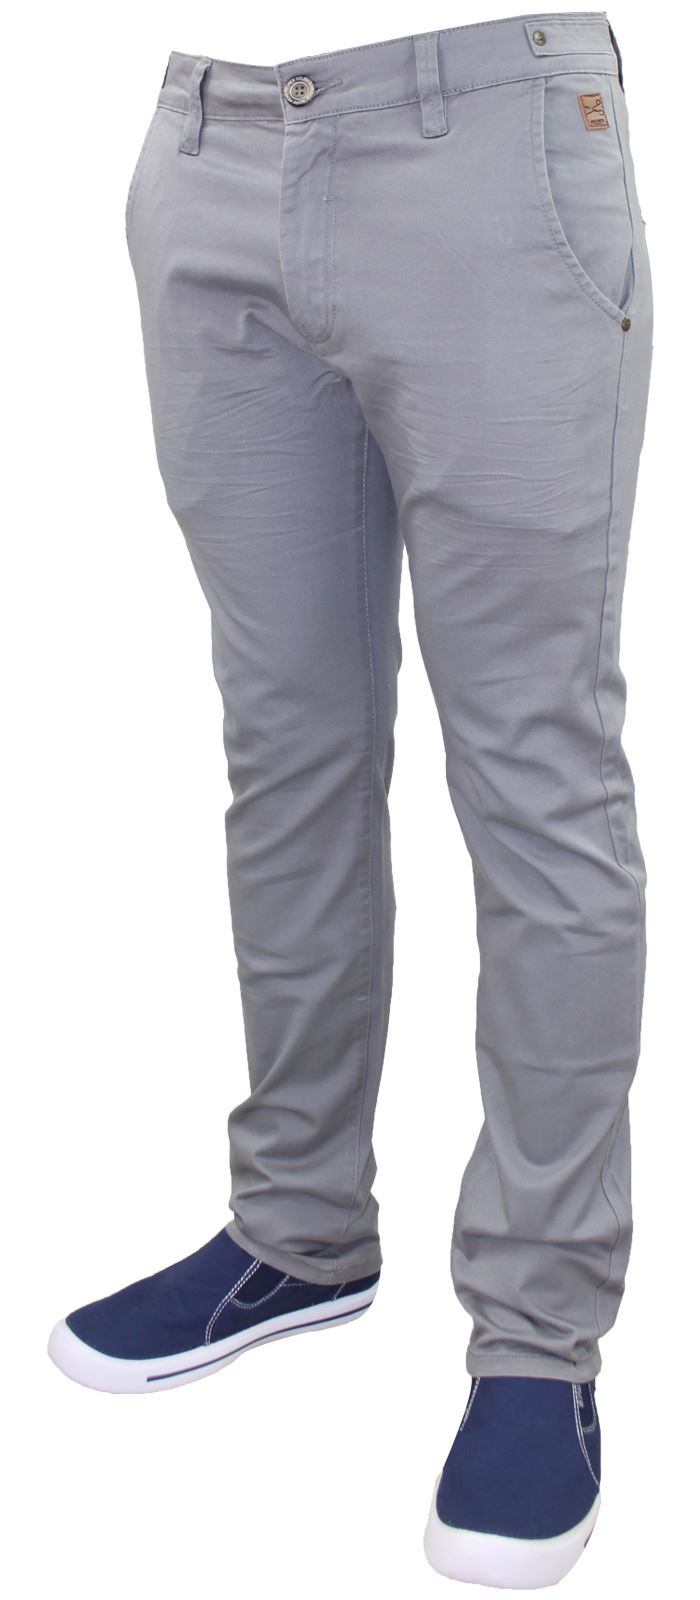 Men-Chinos-Trousers-Regular-Fit-Stretch-Cotton-Jeans-Pants-All-Waist-Sizes thumbnail 10